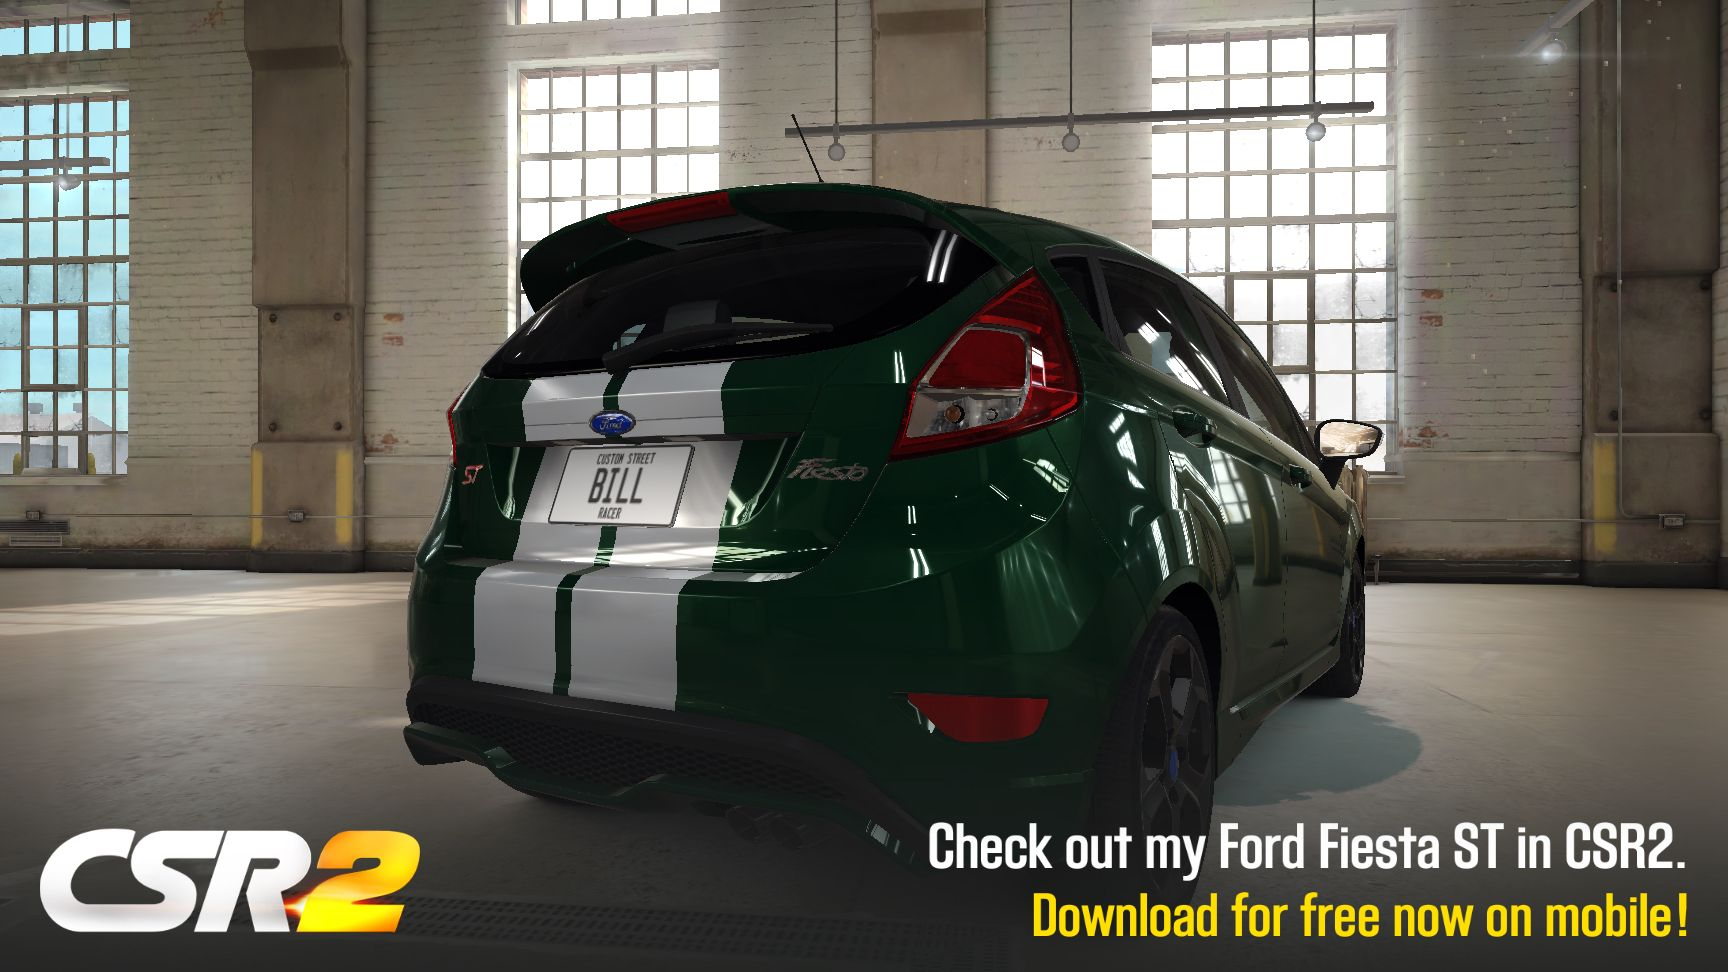 Ford Fiesta St Csr Racing 2 I D Prefer Dark Green Wheels